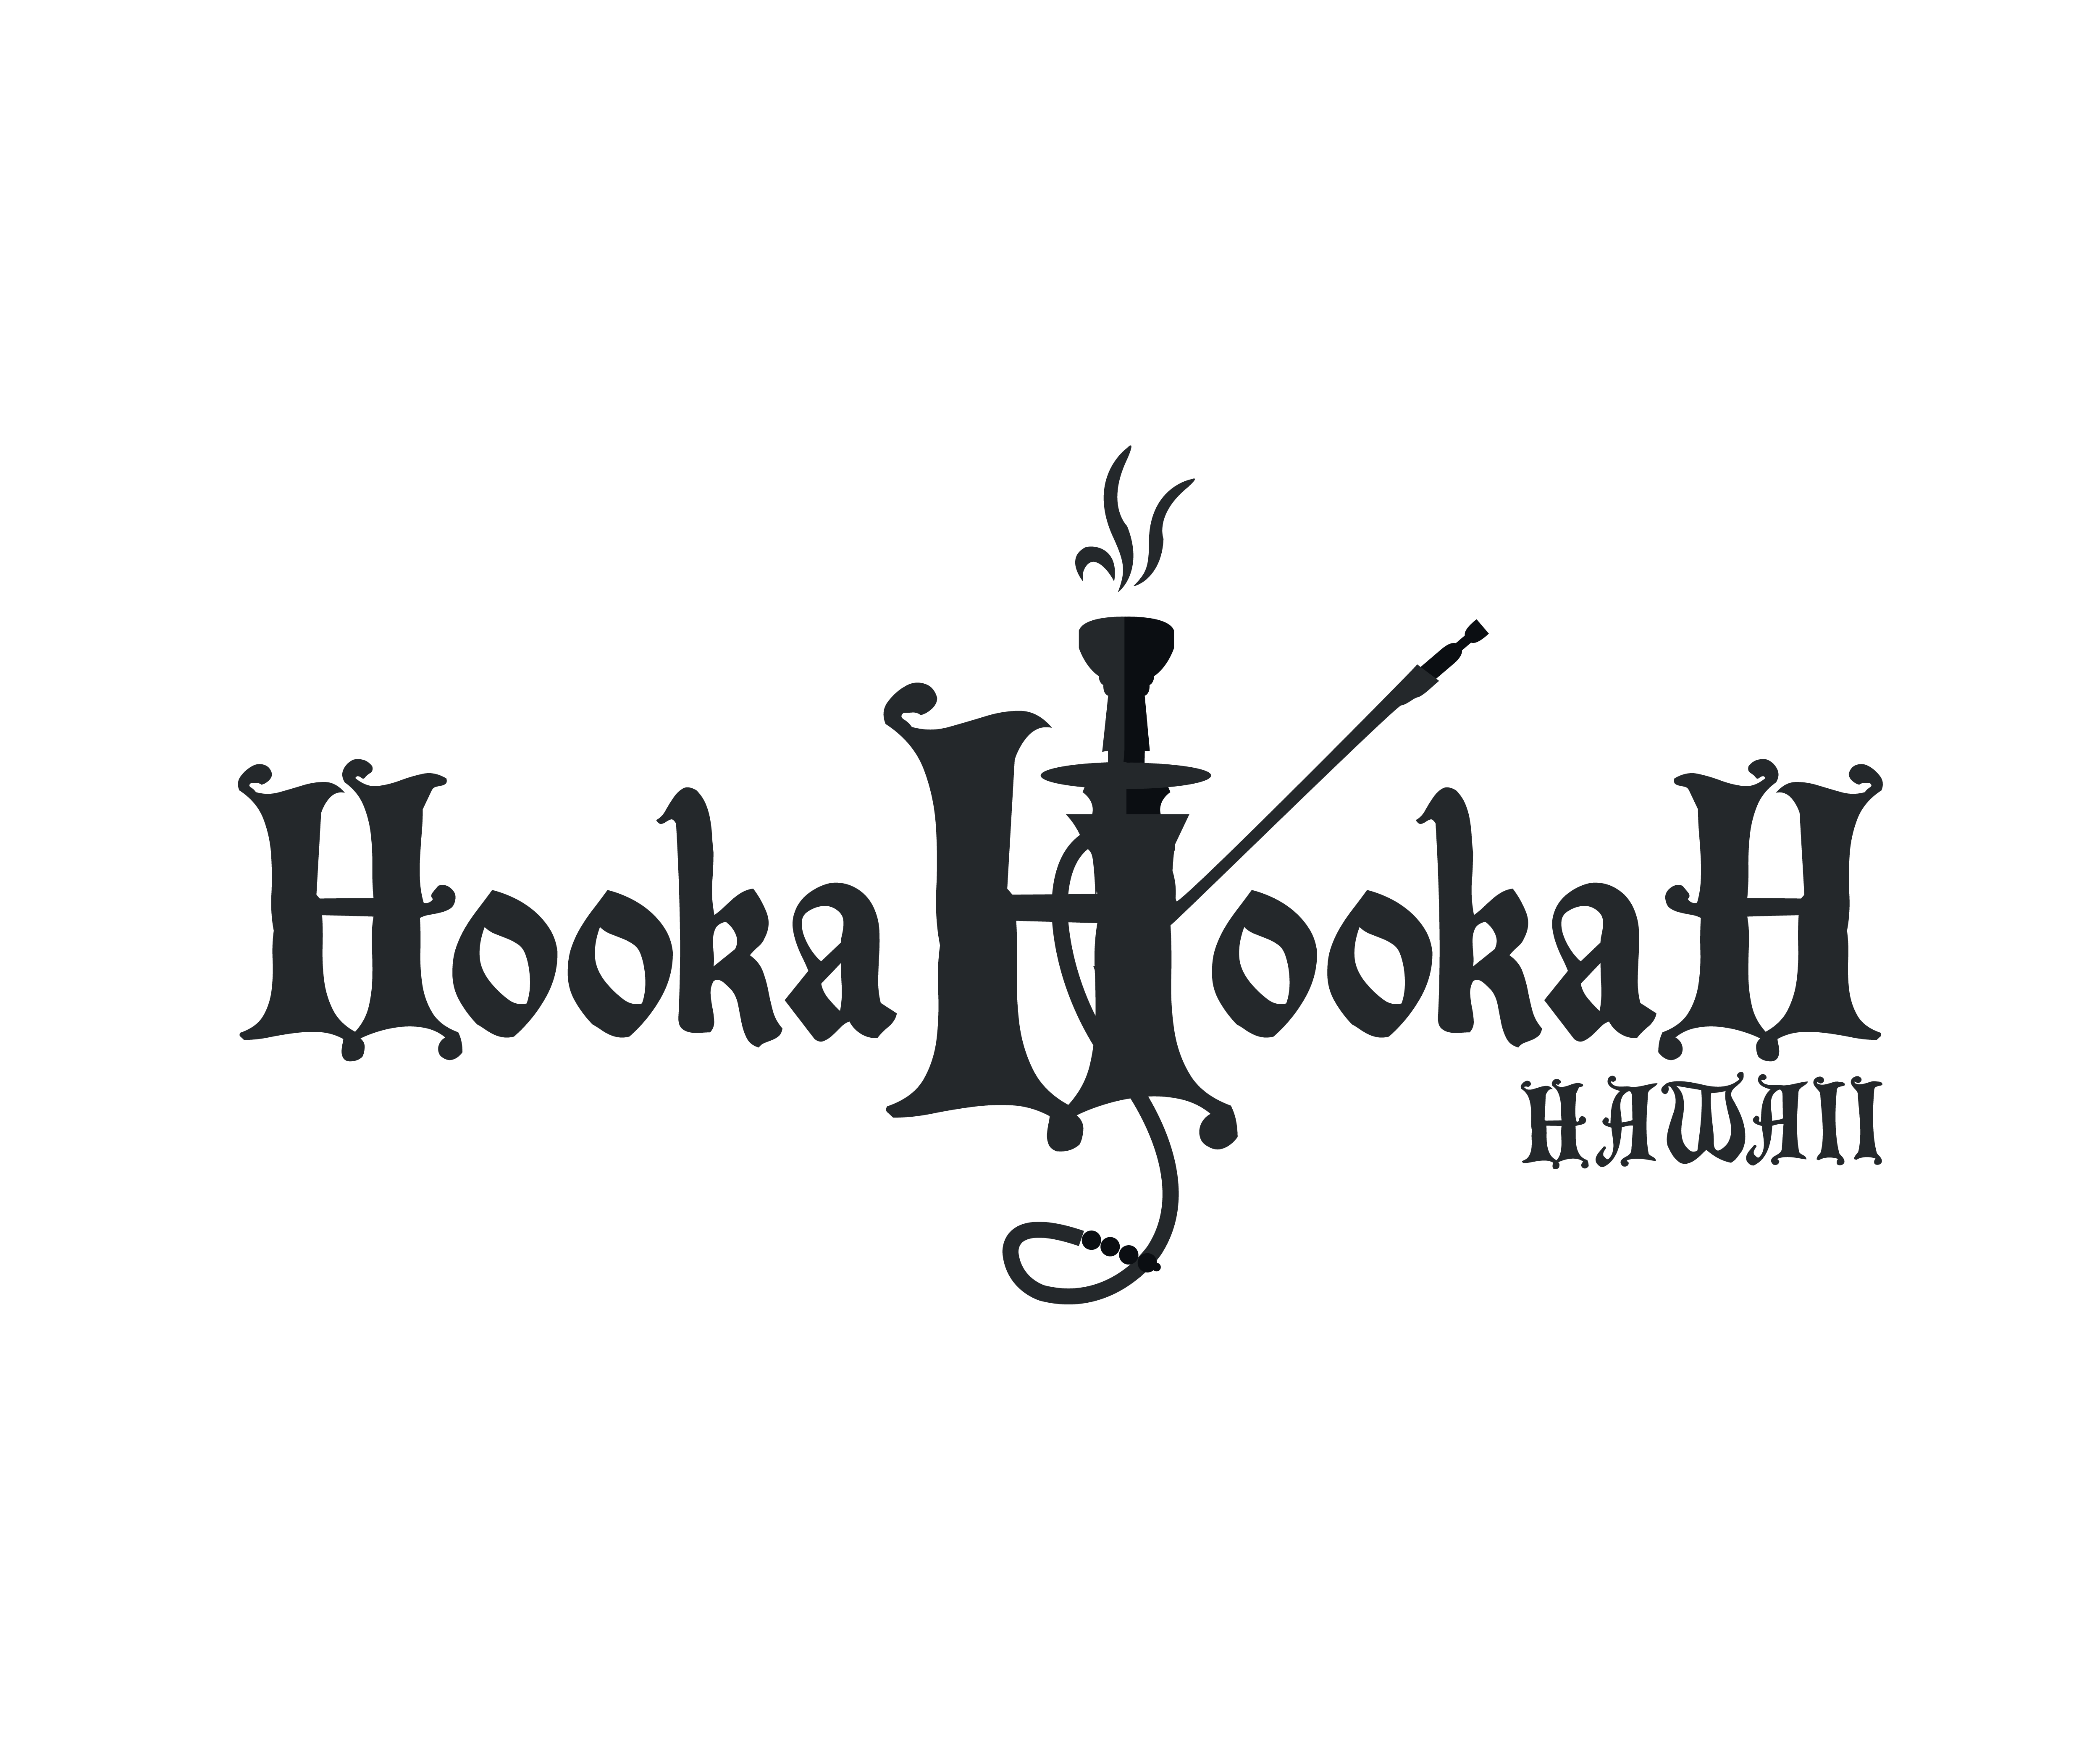 Hookahookah will entertain you!